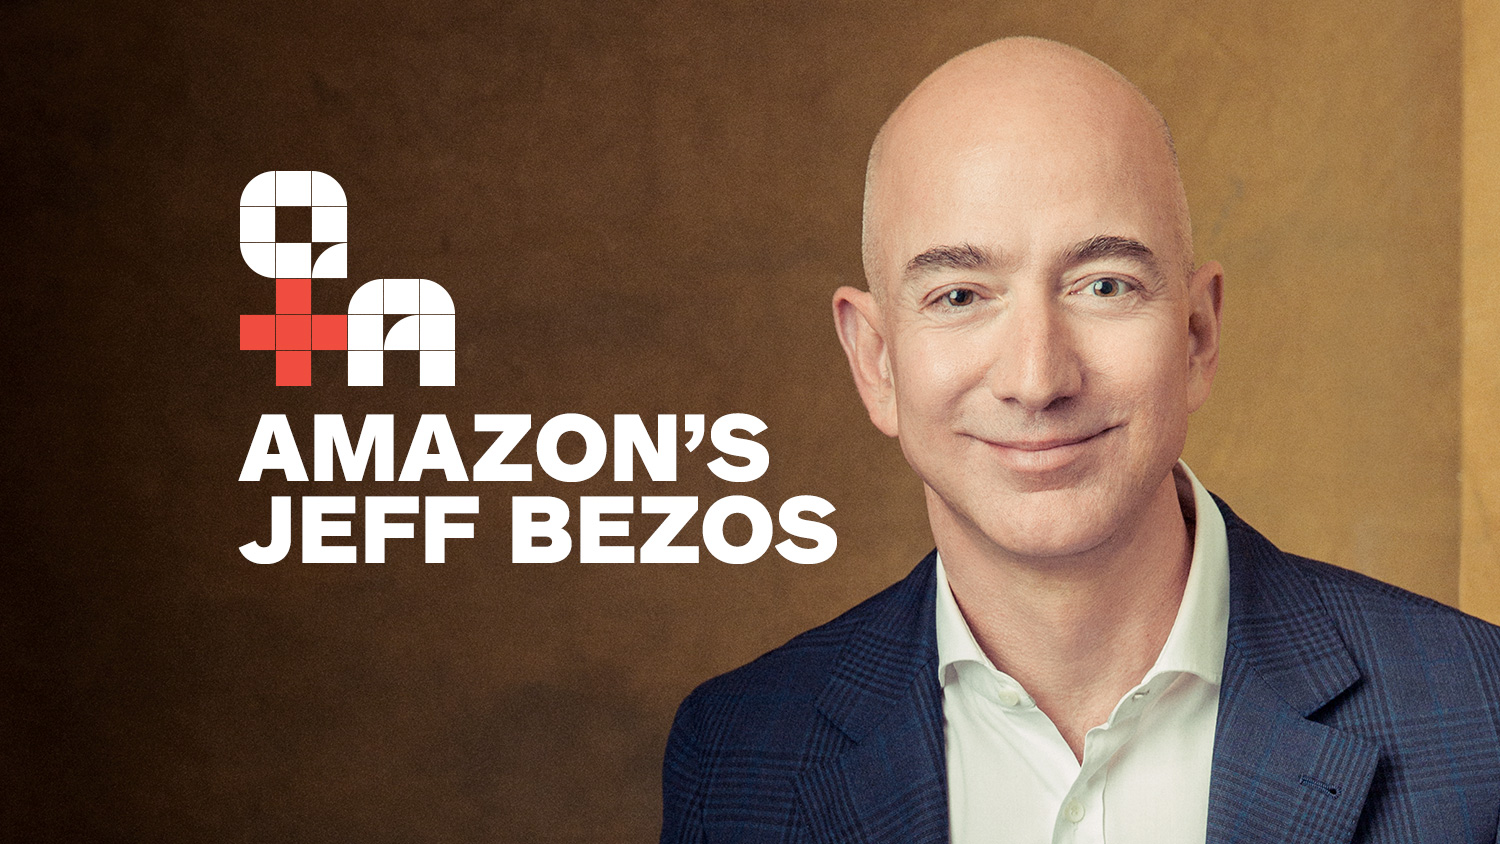 """Amazon's Jeff Bezos on Hollywood Strategy: """"When People Join Prime, ... They Buy More Shoes"""""""